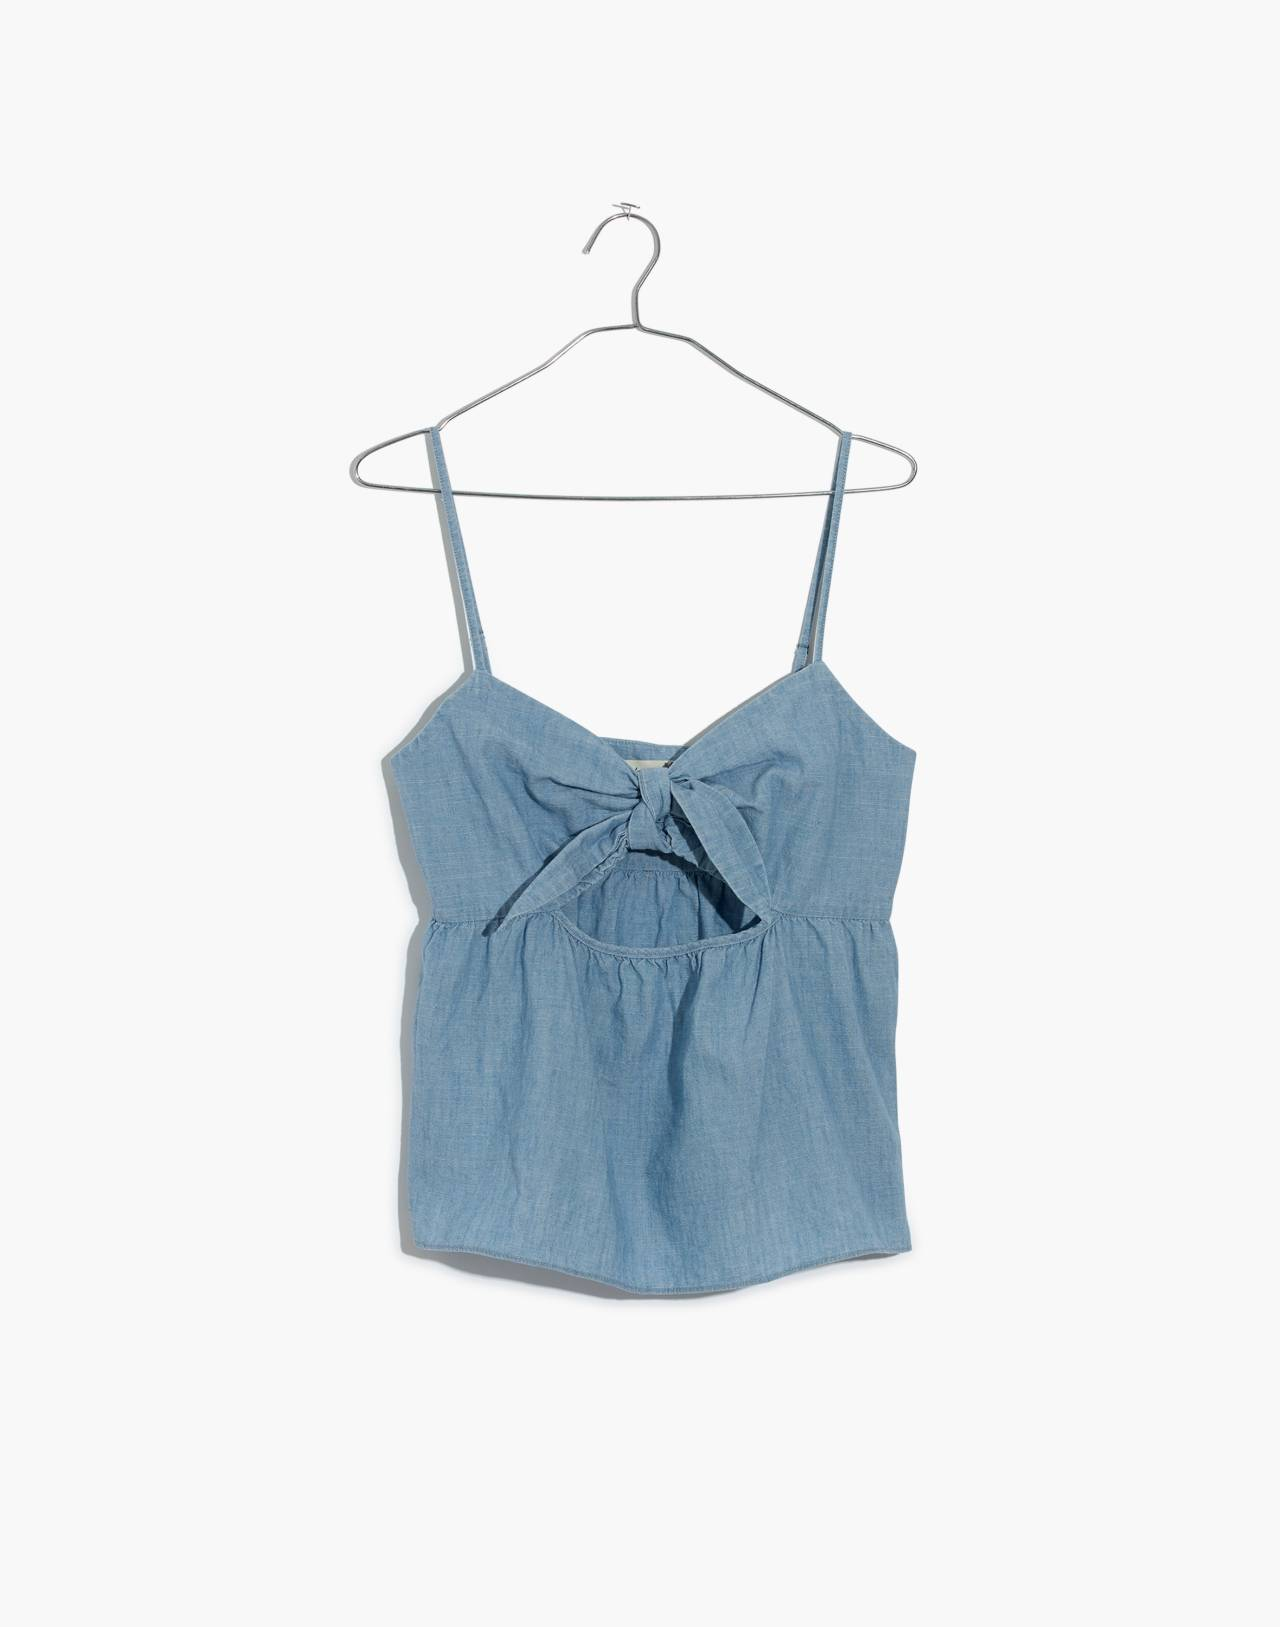 Chambray Tie-Front Keyhole Cami Top in corrina wash image 4